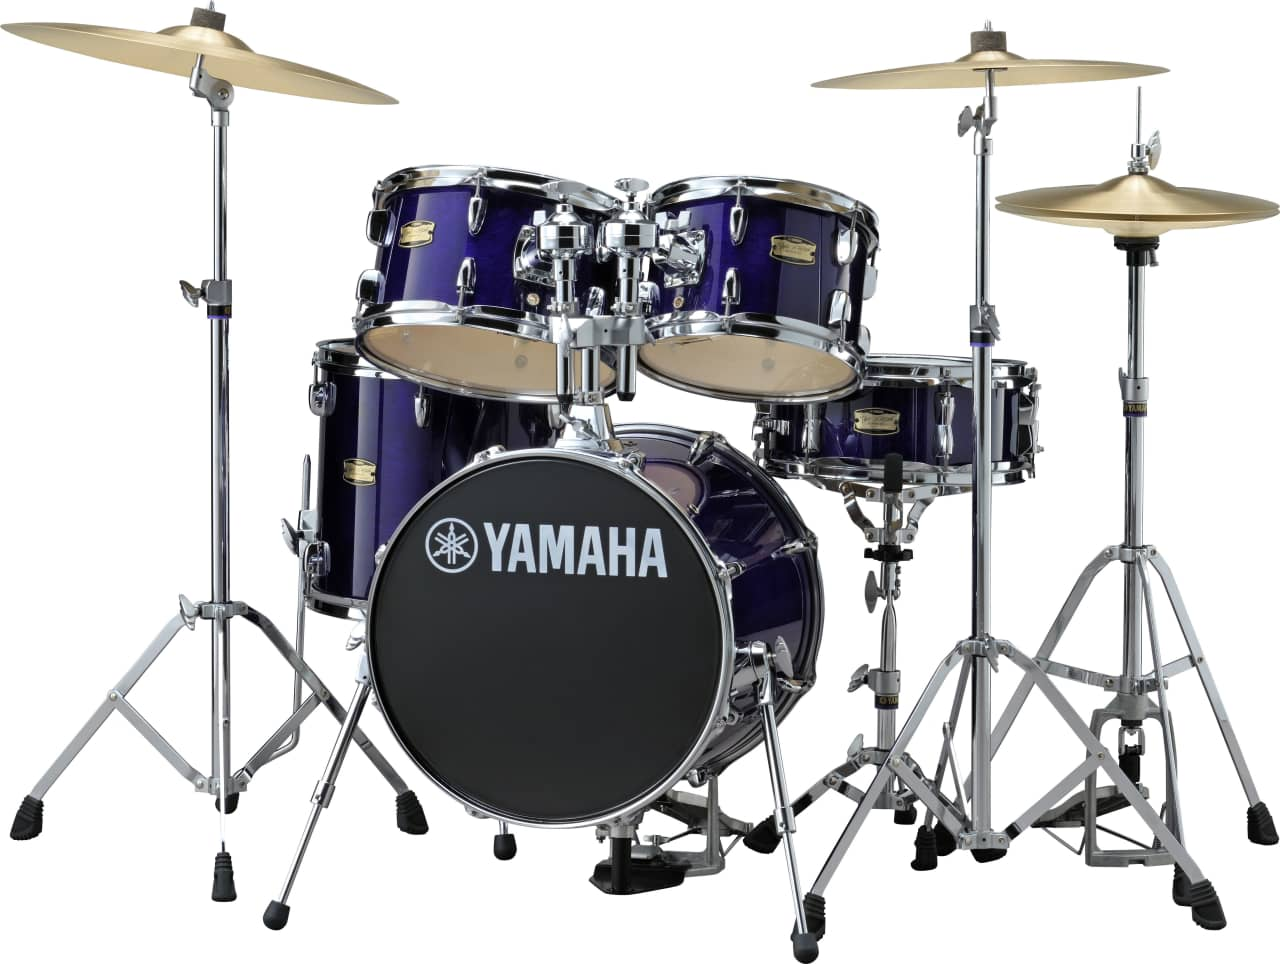 Yamaha Custom Drums With Floor Tom On Stand